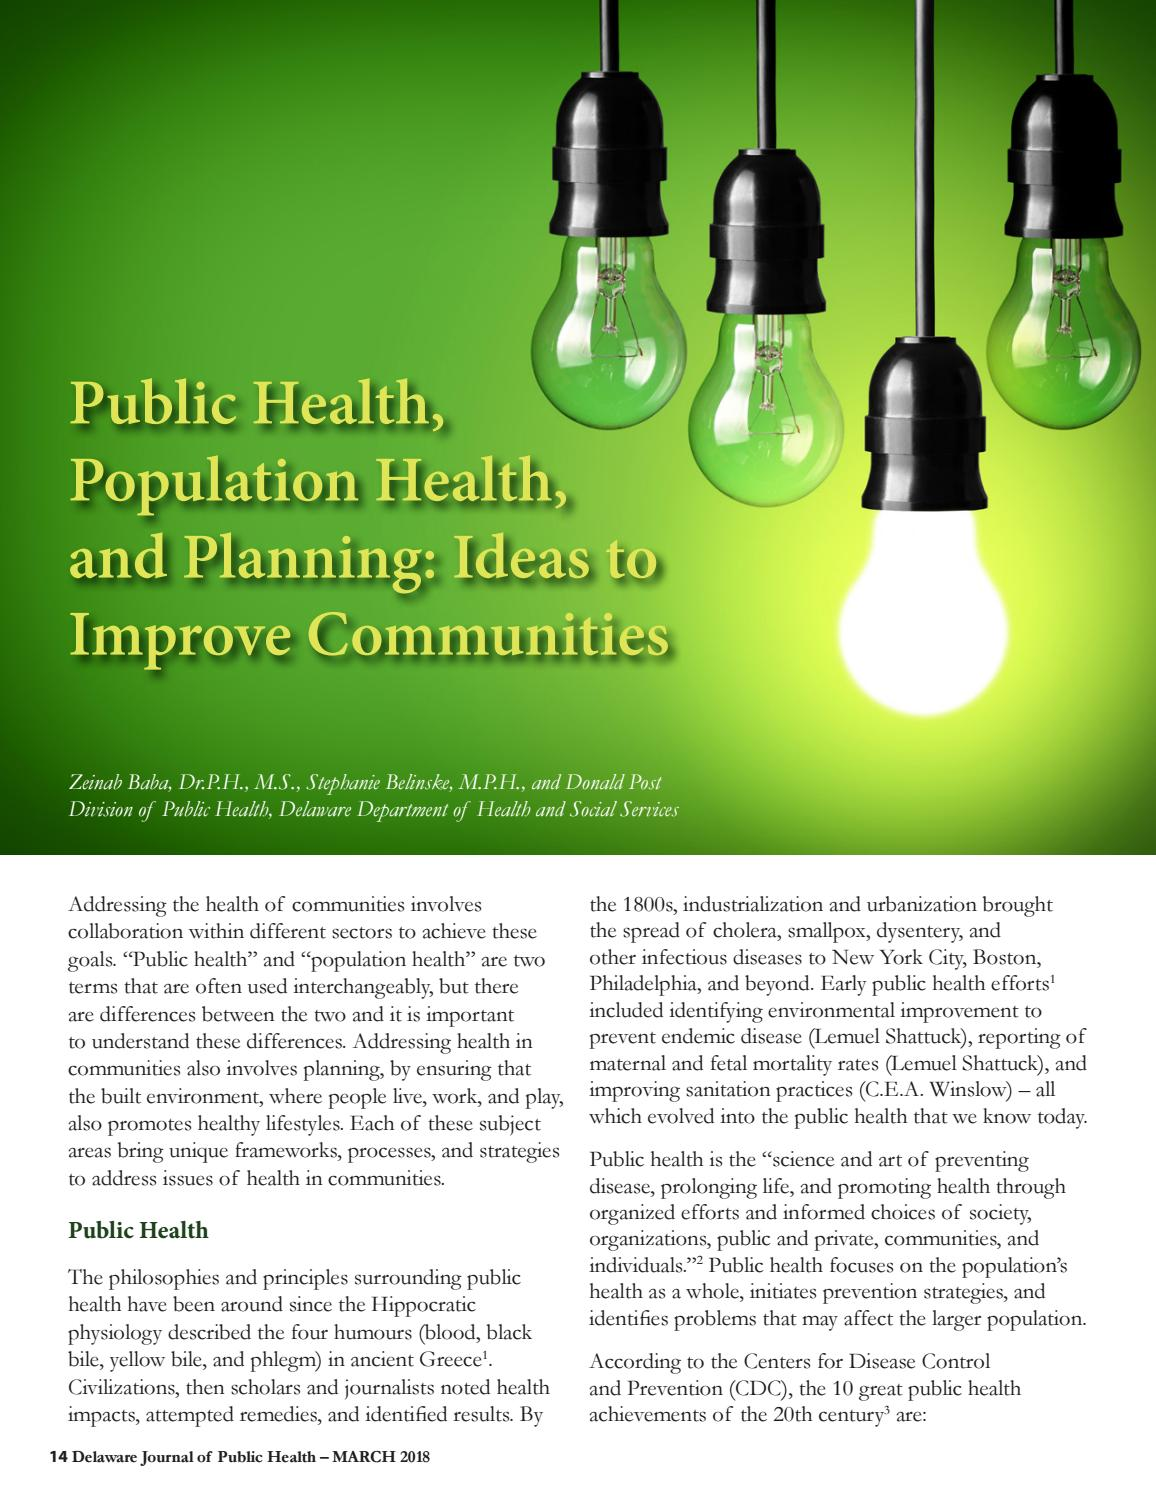 Delaware Journal of Public Health - Planning and Public Health by